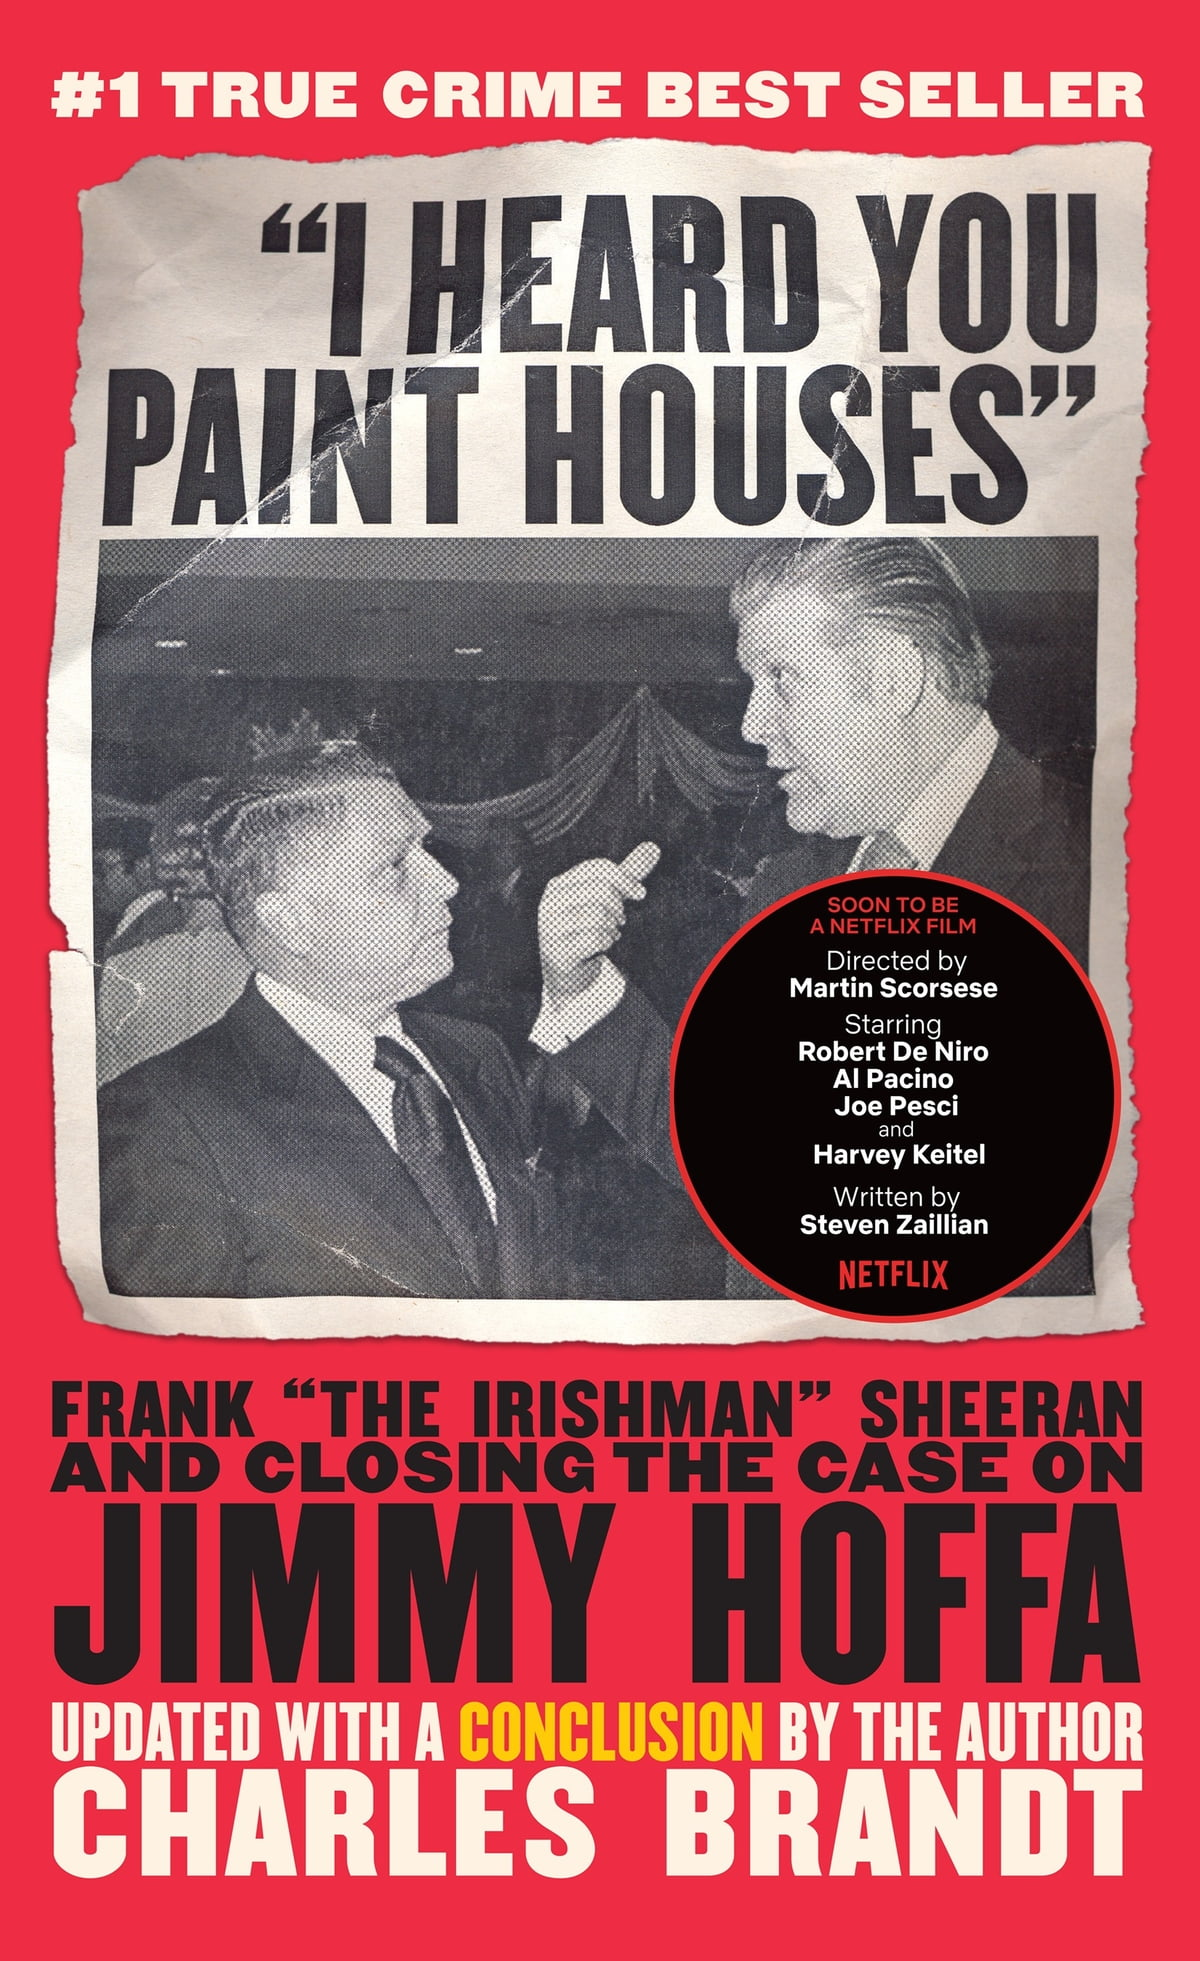 Mafia boss sam giancana ebook by susan mcnicoll 9781784281304 i heard you paint houses updated edition frank the irishman fandeluxe Ebook collections